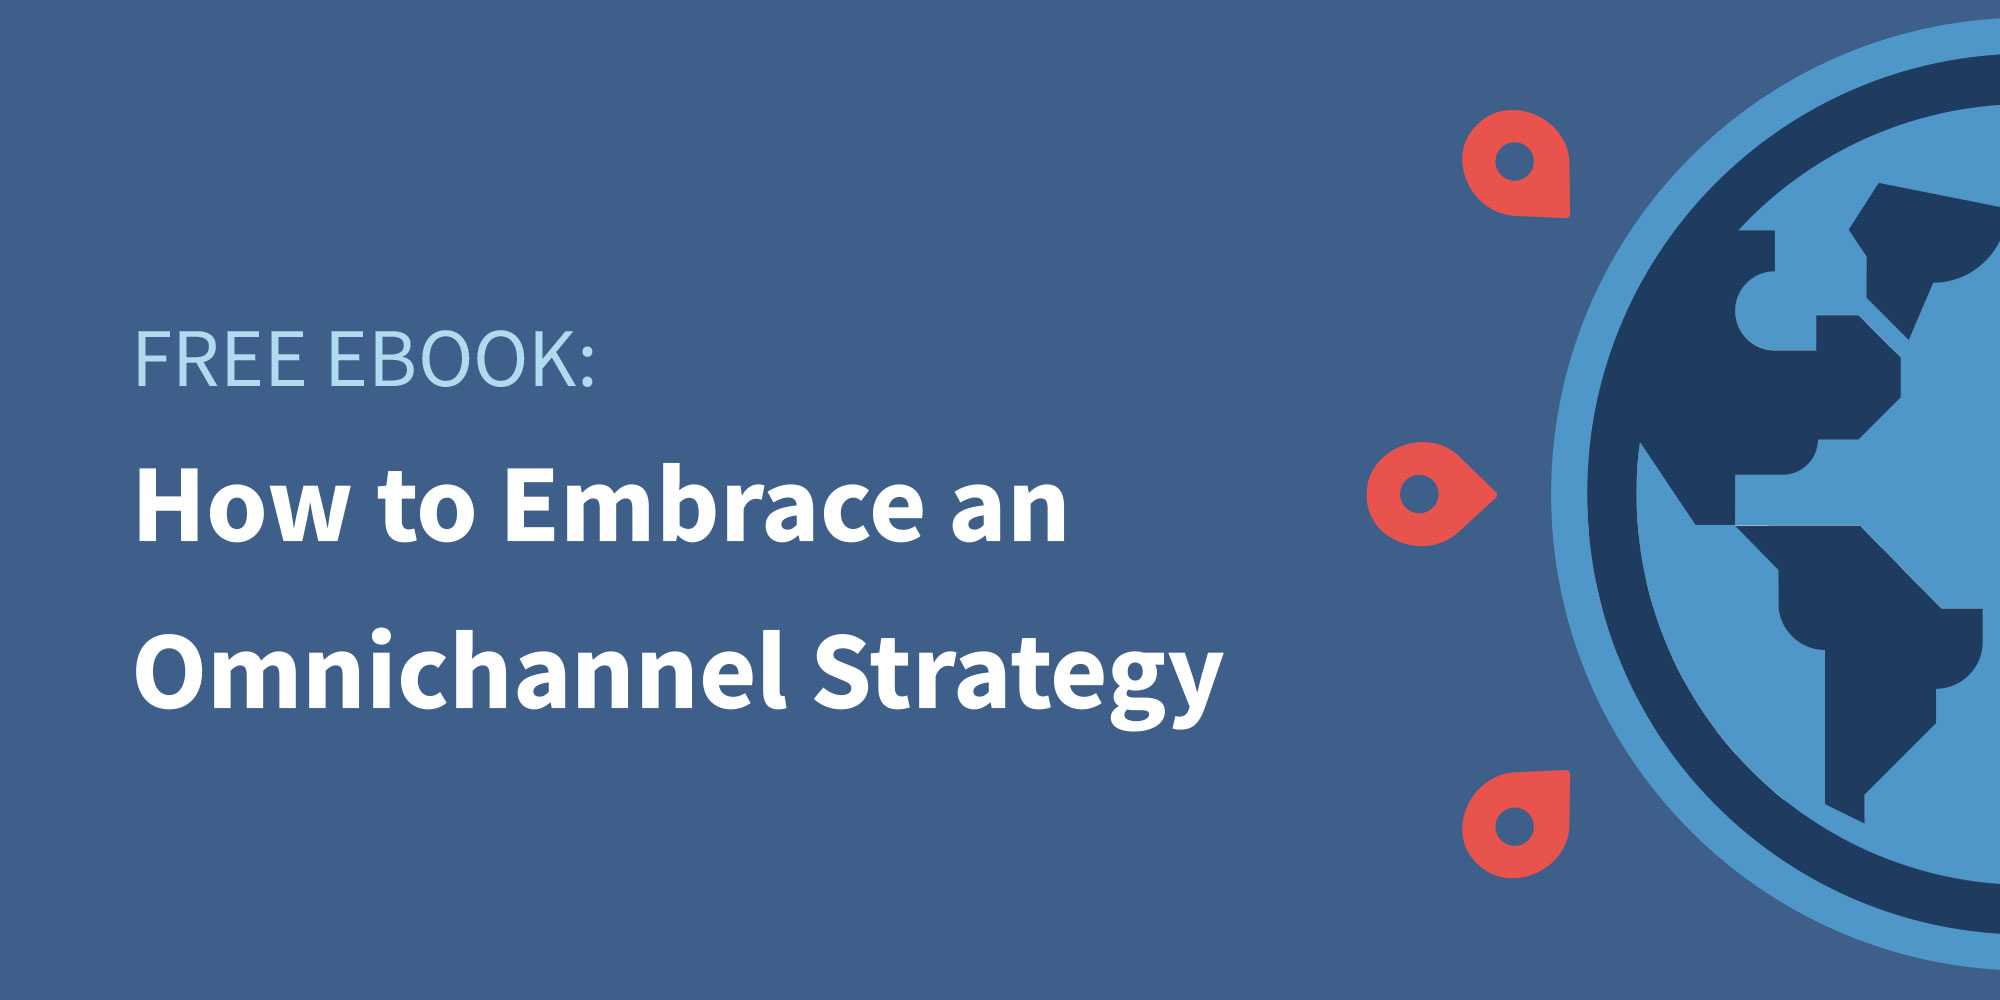 Traxo eBook How to Embrace an Omnichannel Strategy Featured Image